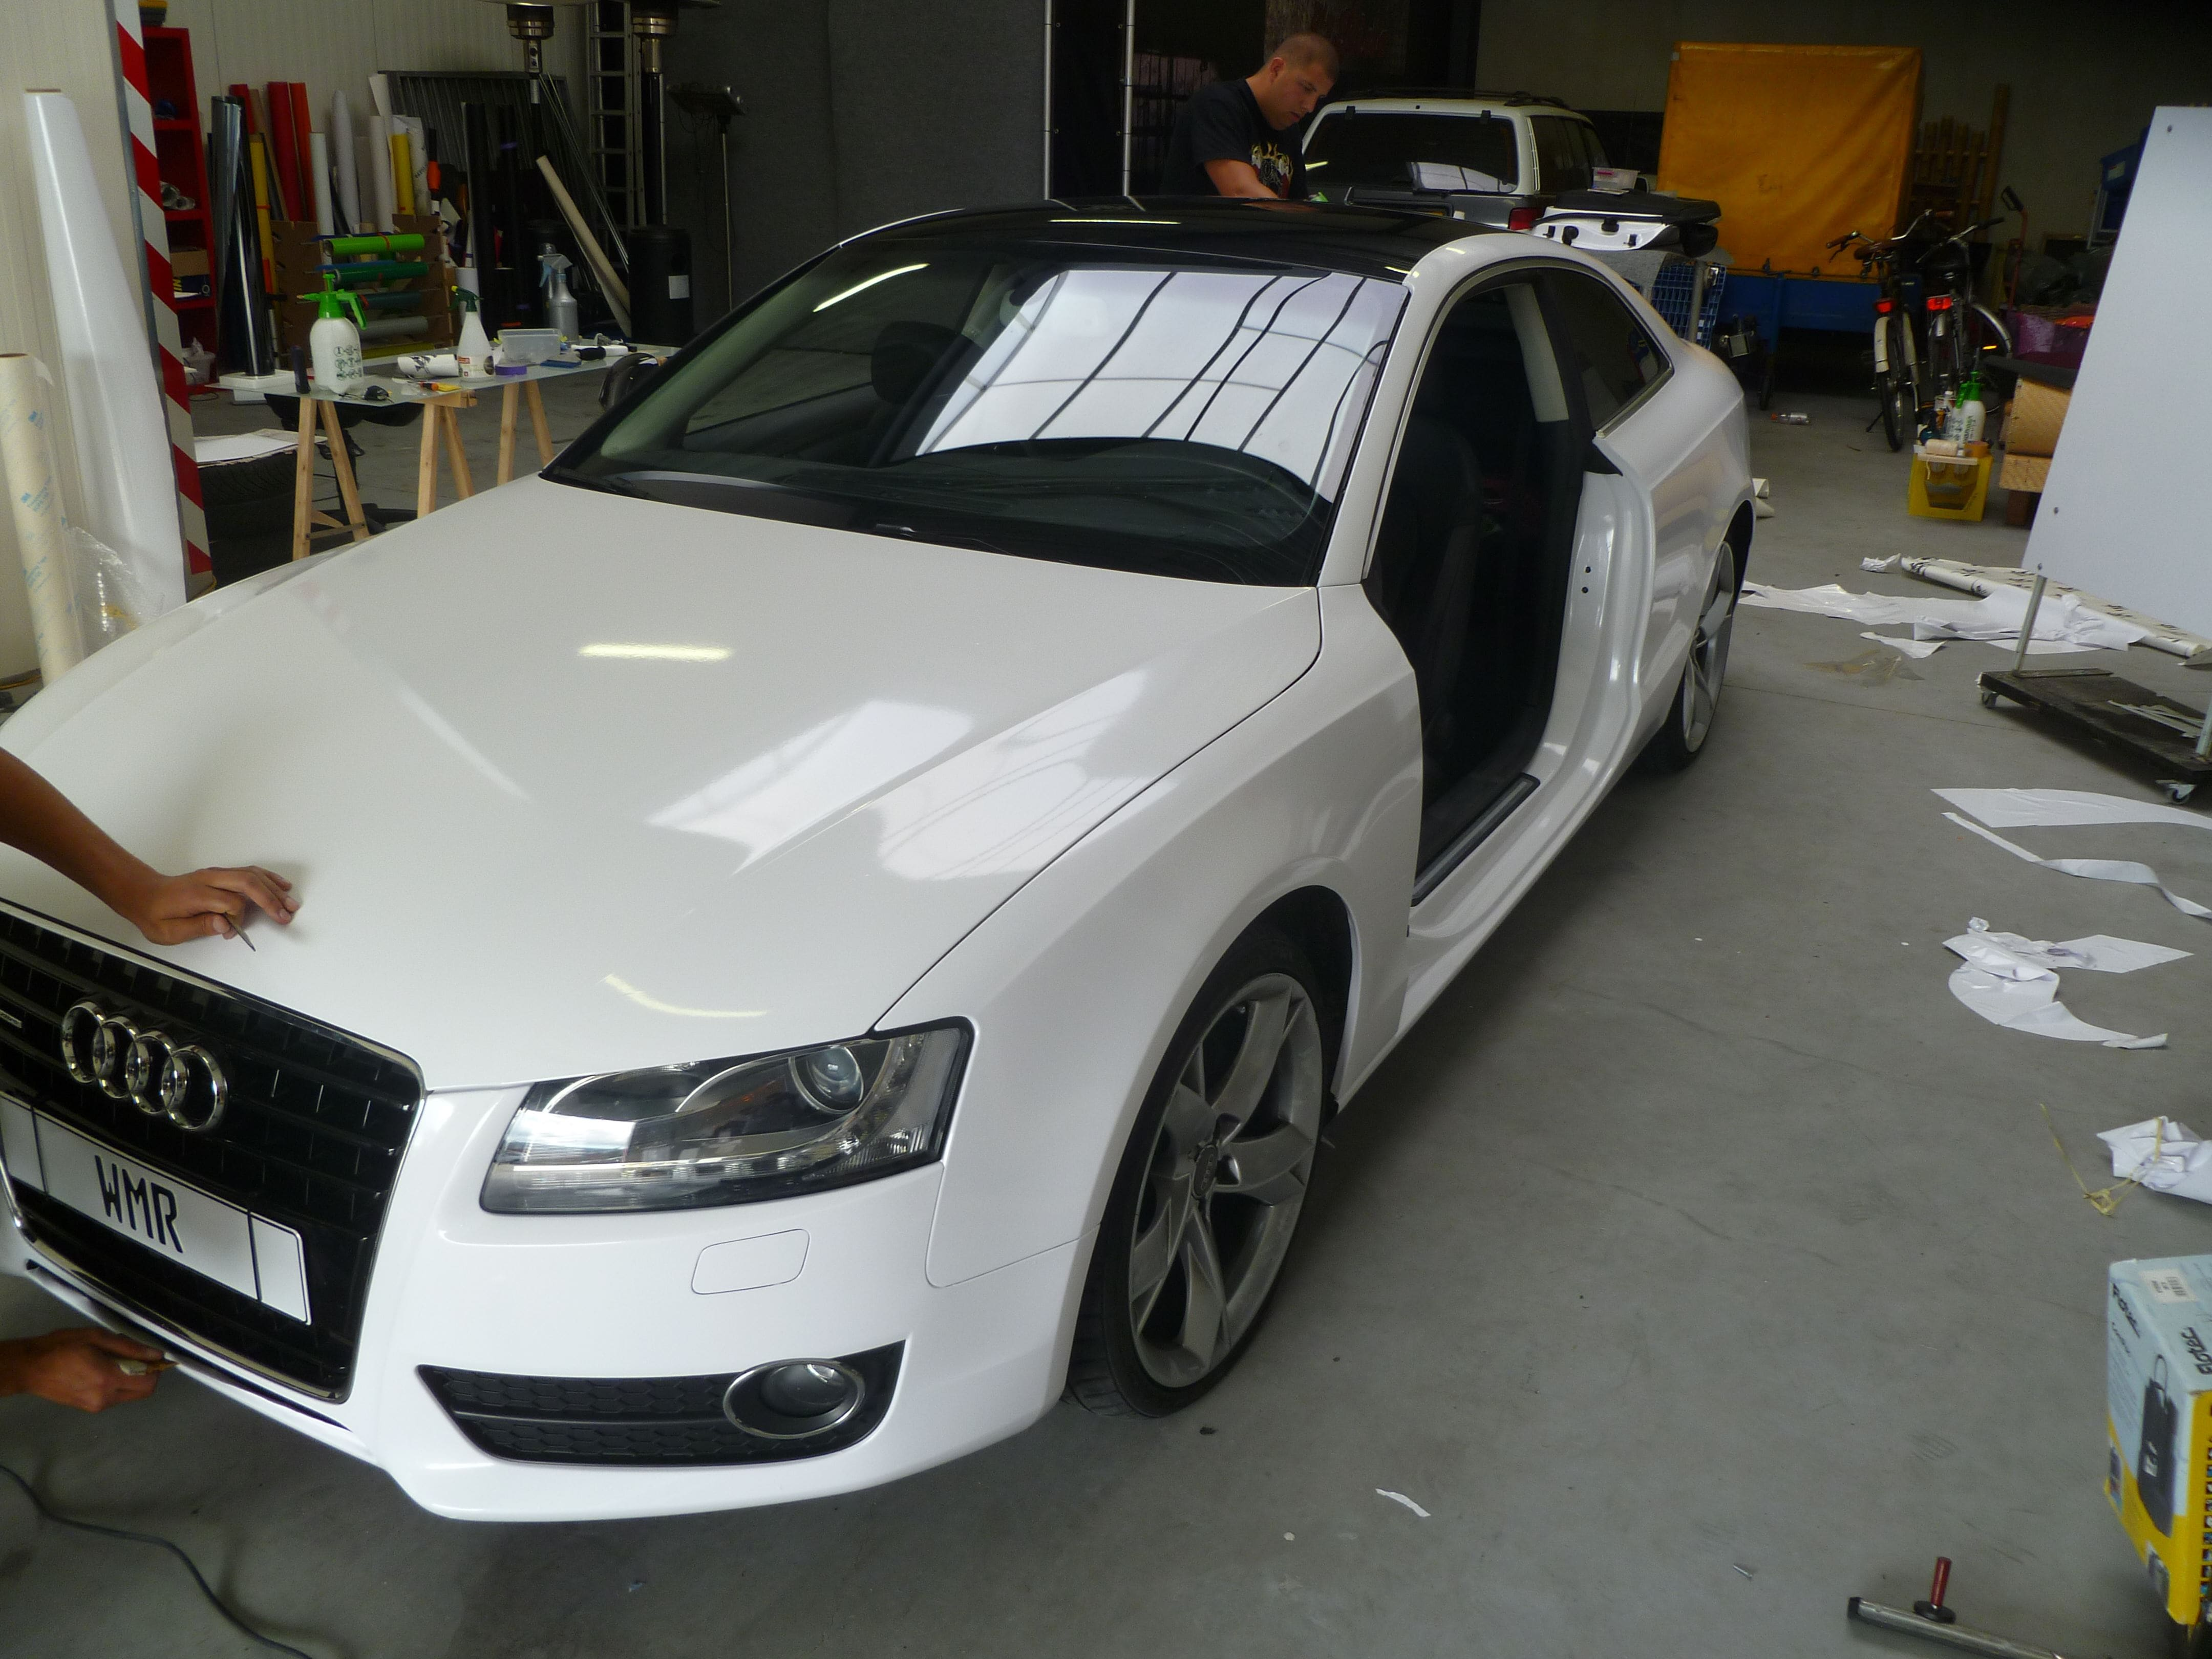 Audi A5 coupe met Metallic Witte Wrap, Carwrapping door Wrapmyride.nu Foto-nr:4734, ©2020